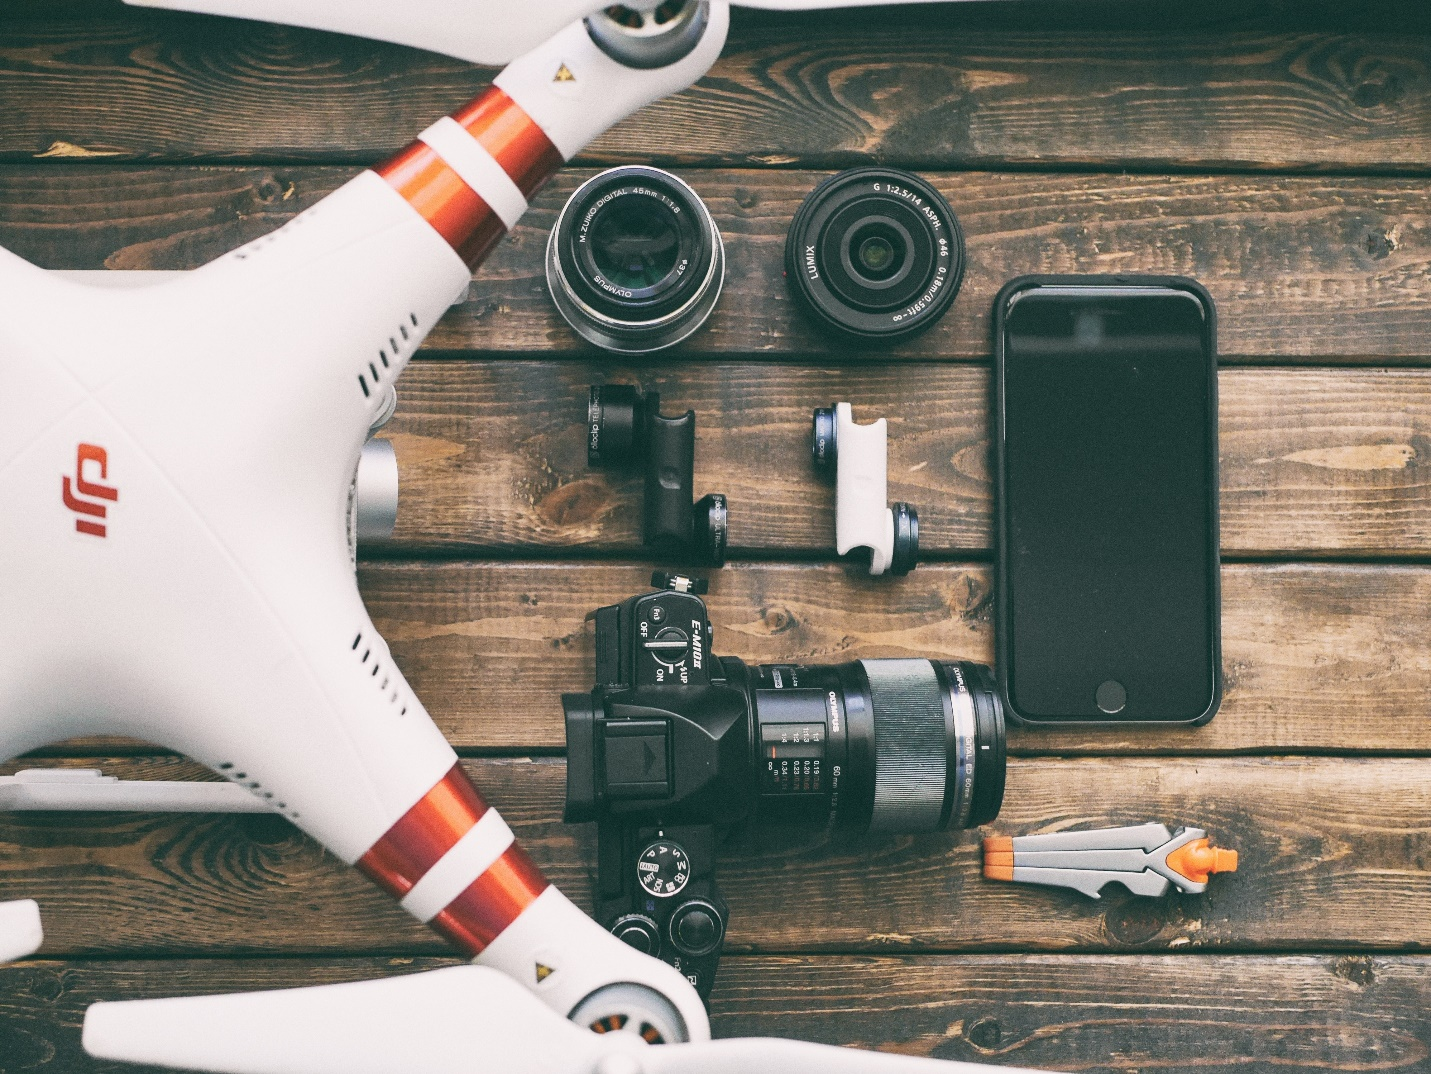 Which Drone Has the Best Camera for Selfie?